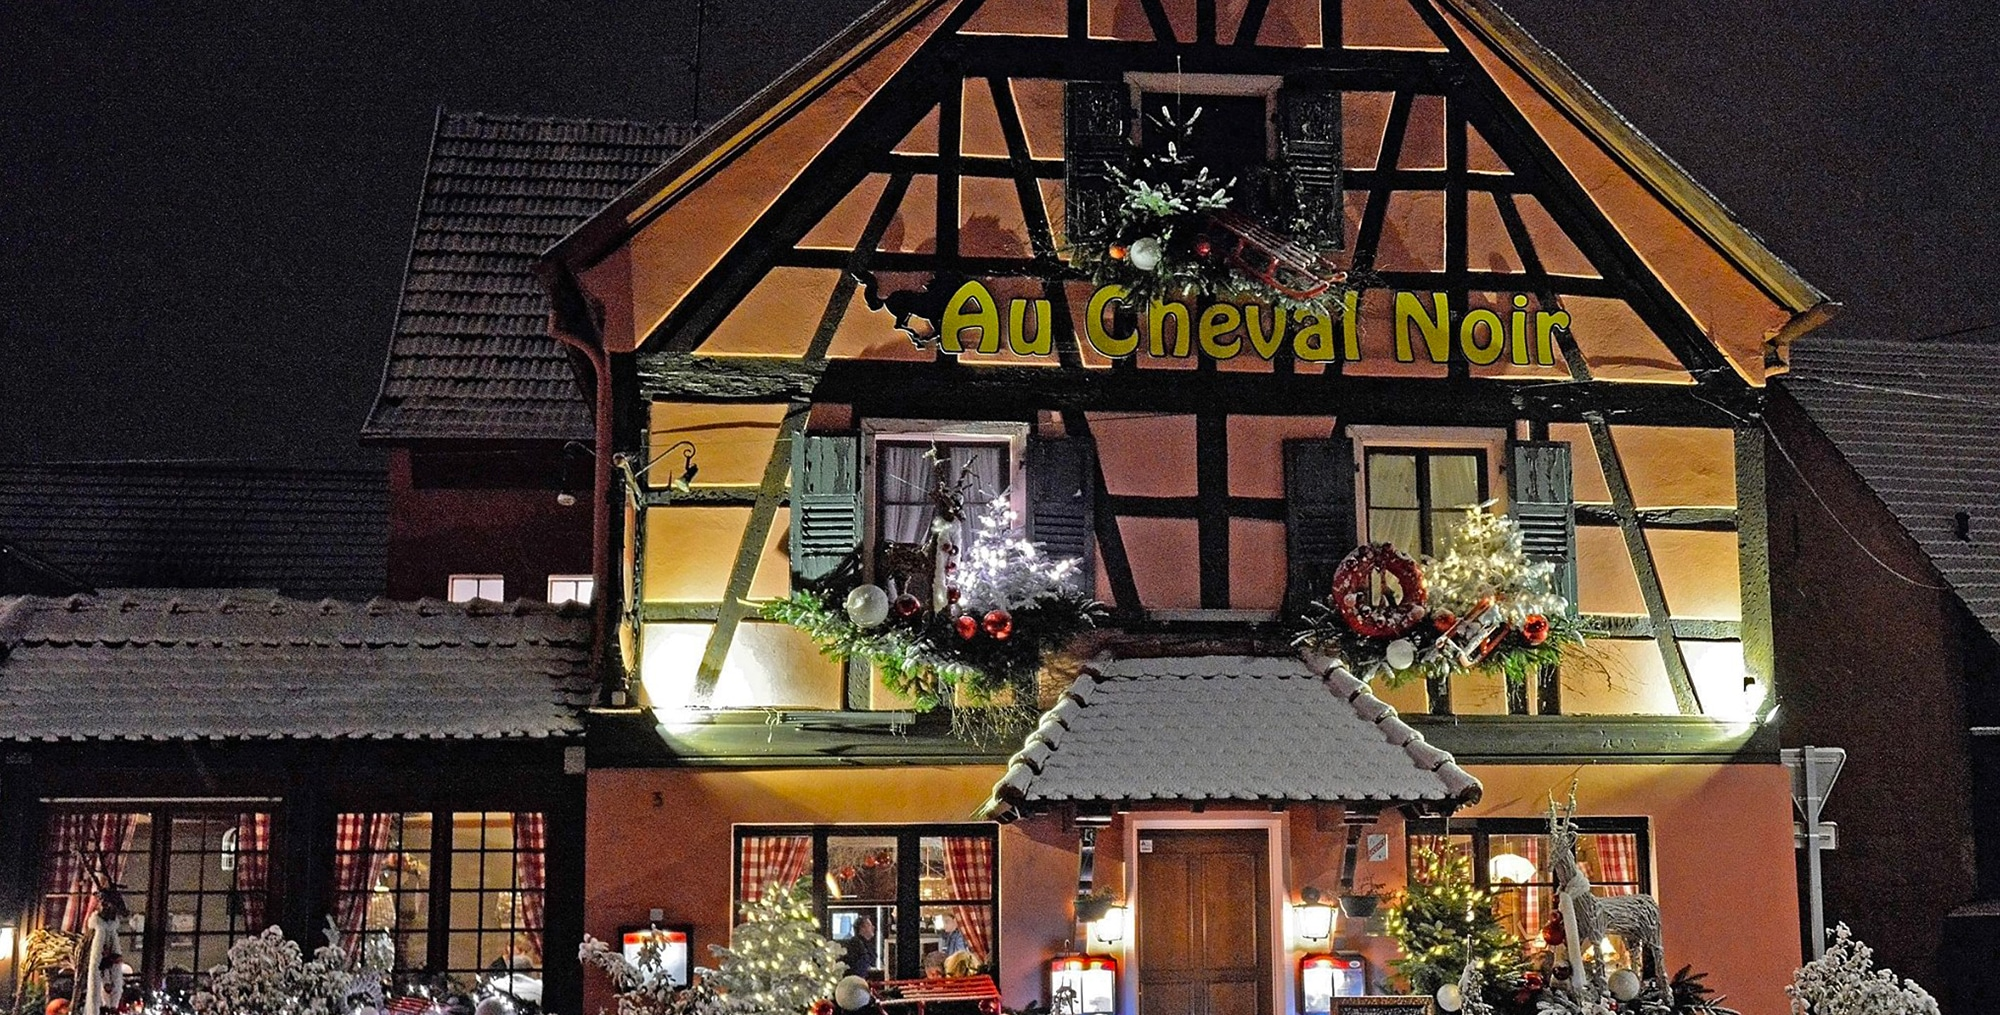 Restaurant Au Cheval Noir Herrlisheim - Photo exterieur